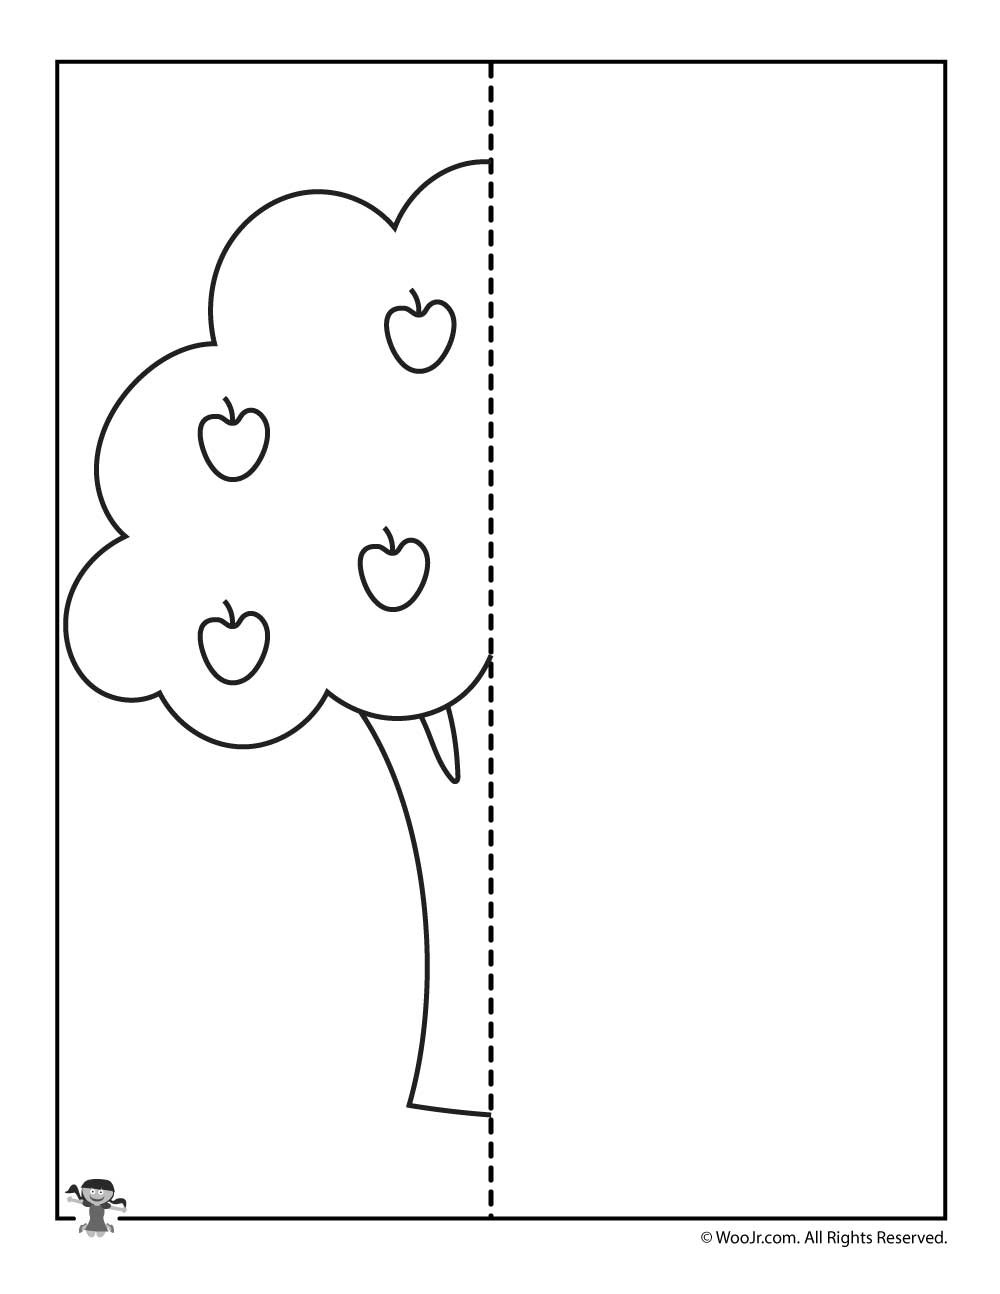 Finish the Drawing Worksheet